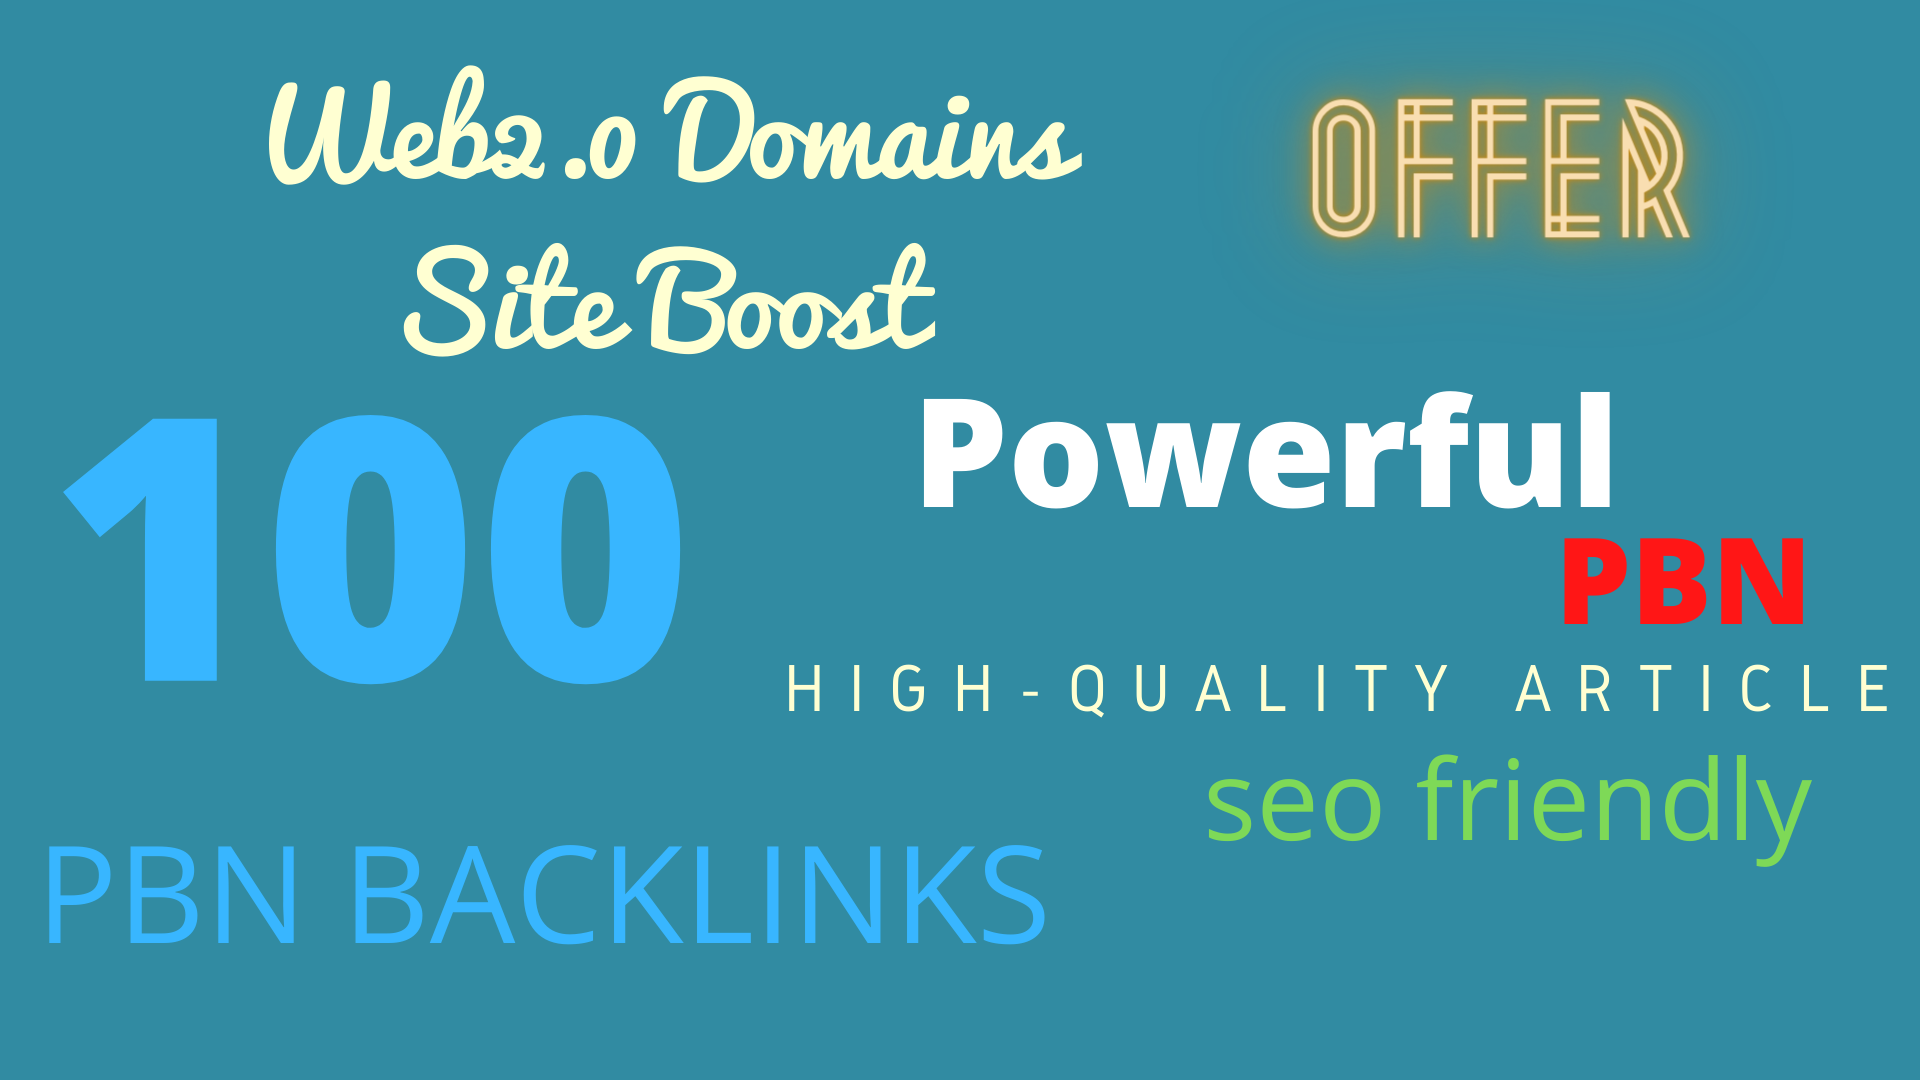 I Will build 100 Back-links From Web2.0 Domains Site HIGH-QUALITY Article Submission Blog Post